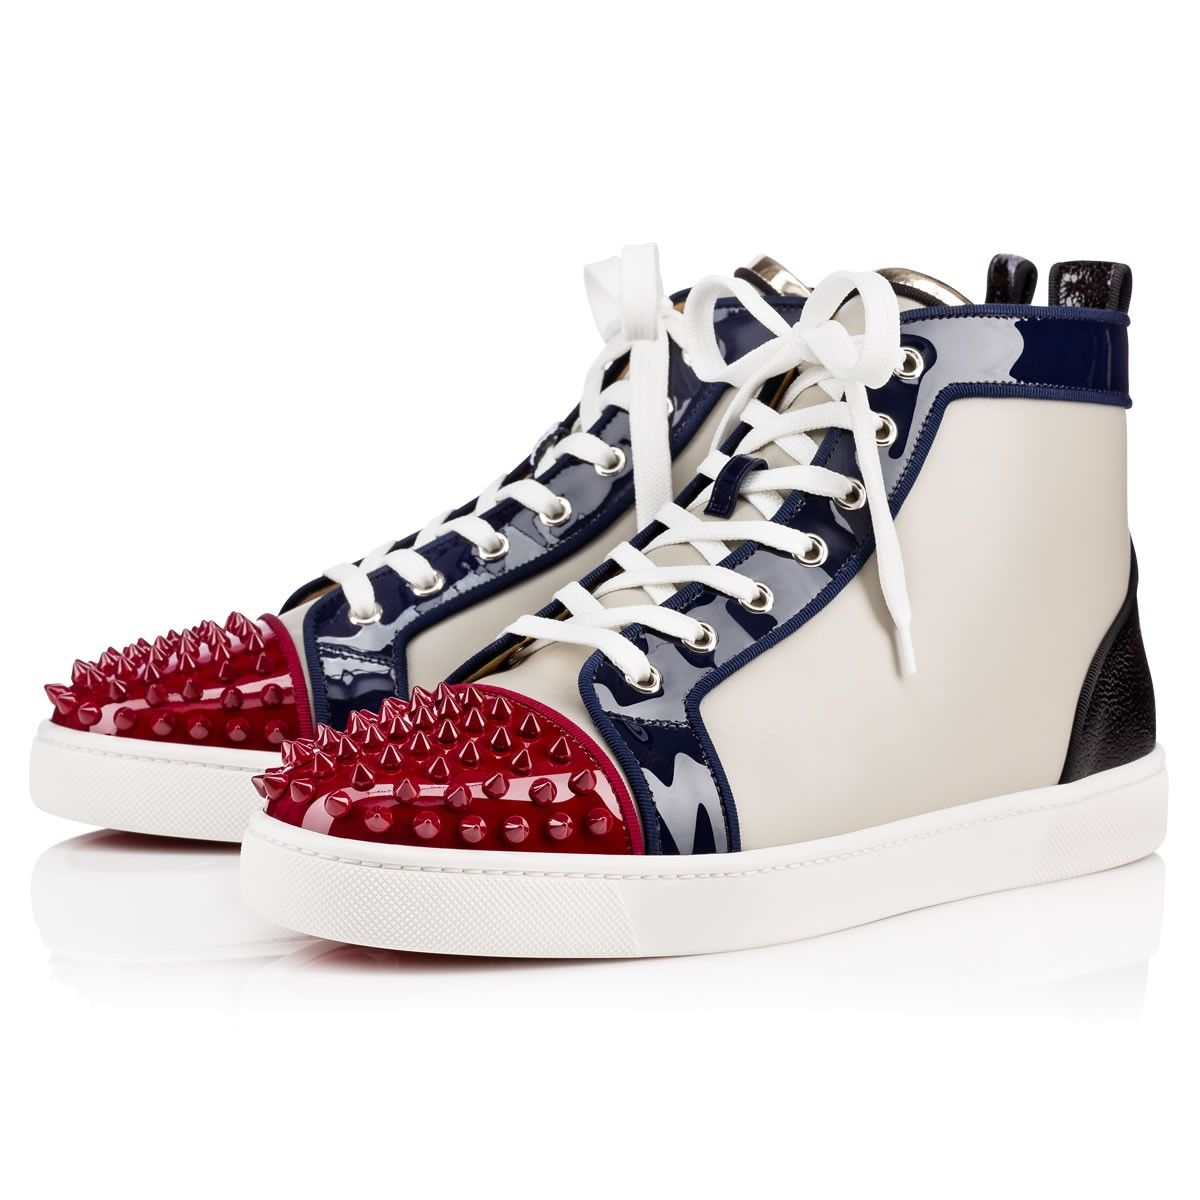 023f53428ab9 CHRISTIAN LOUBOUTIN Lou Spikes Patent Calf Caviar Multicolor Calfskin - Men  Shoes - Christian Louboutin.  christianlouboutin  shoes